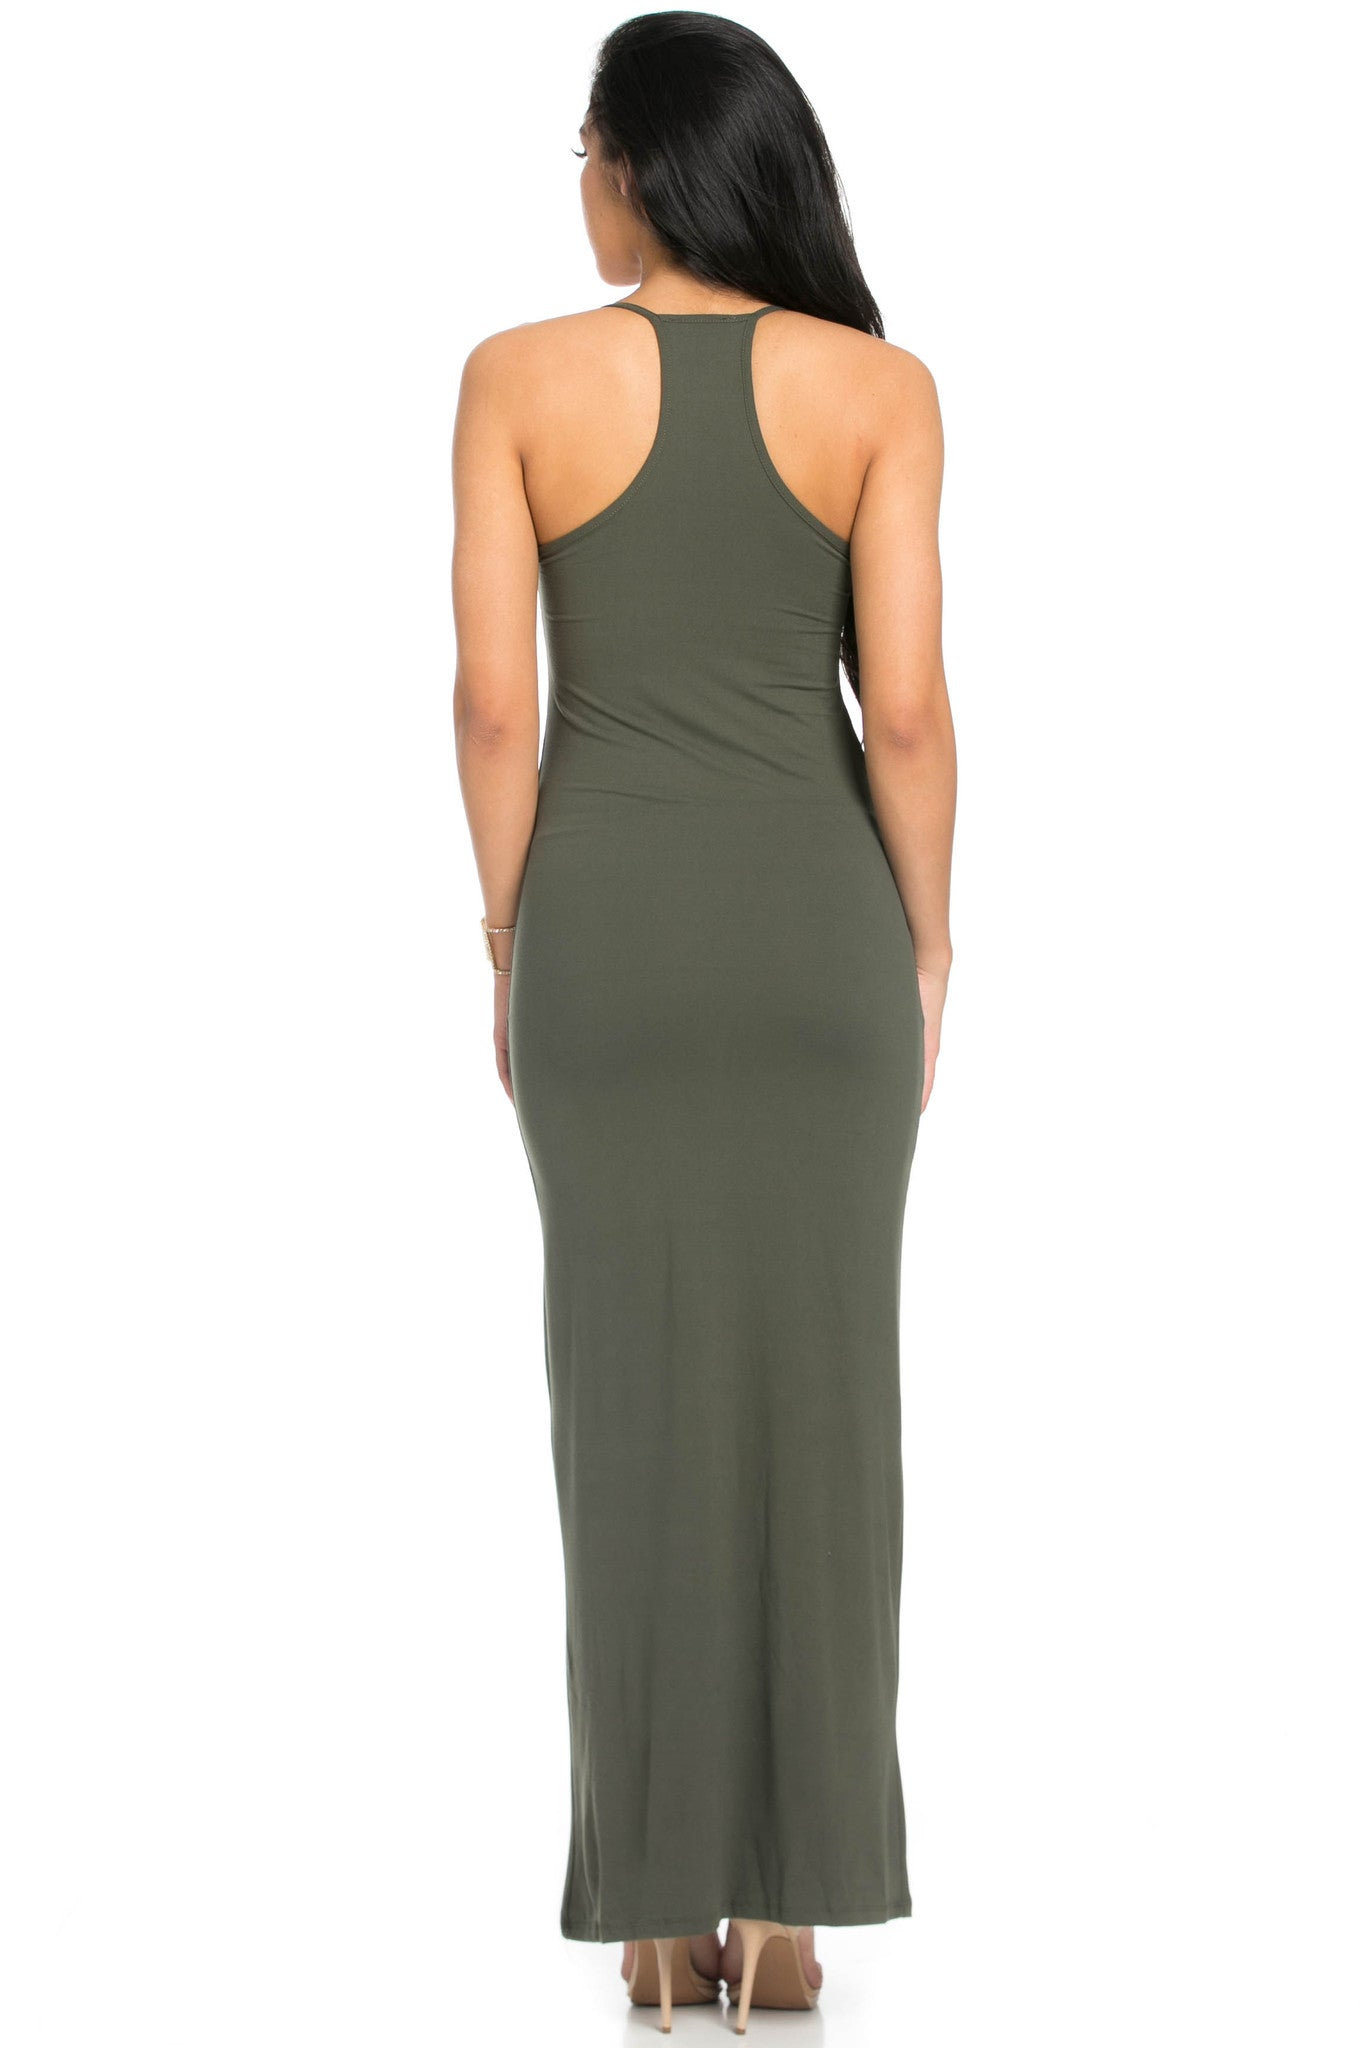 Micro Suede Olive Maxi Dress - Dresses - My Yuccie - 3